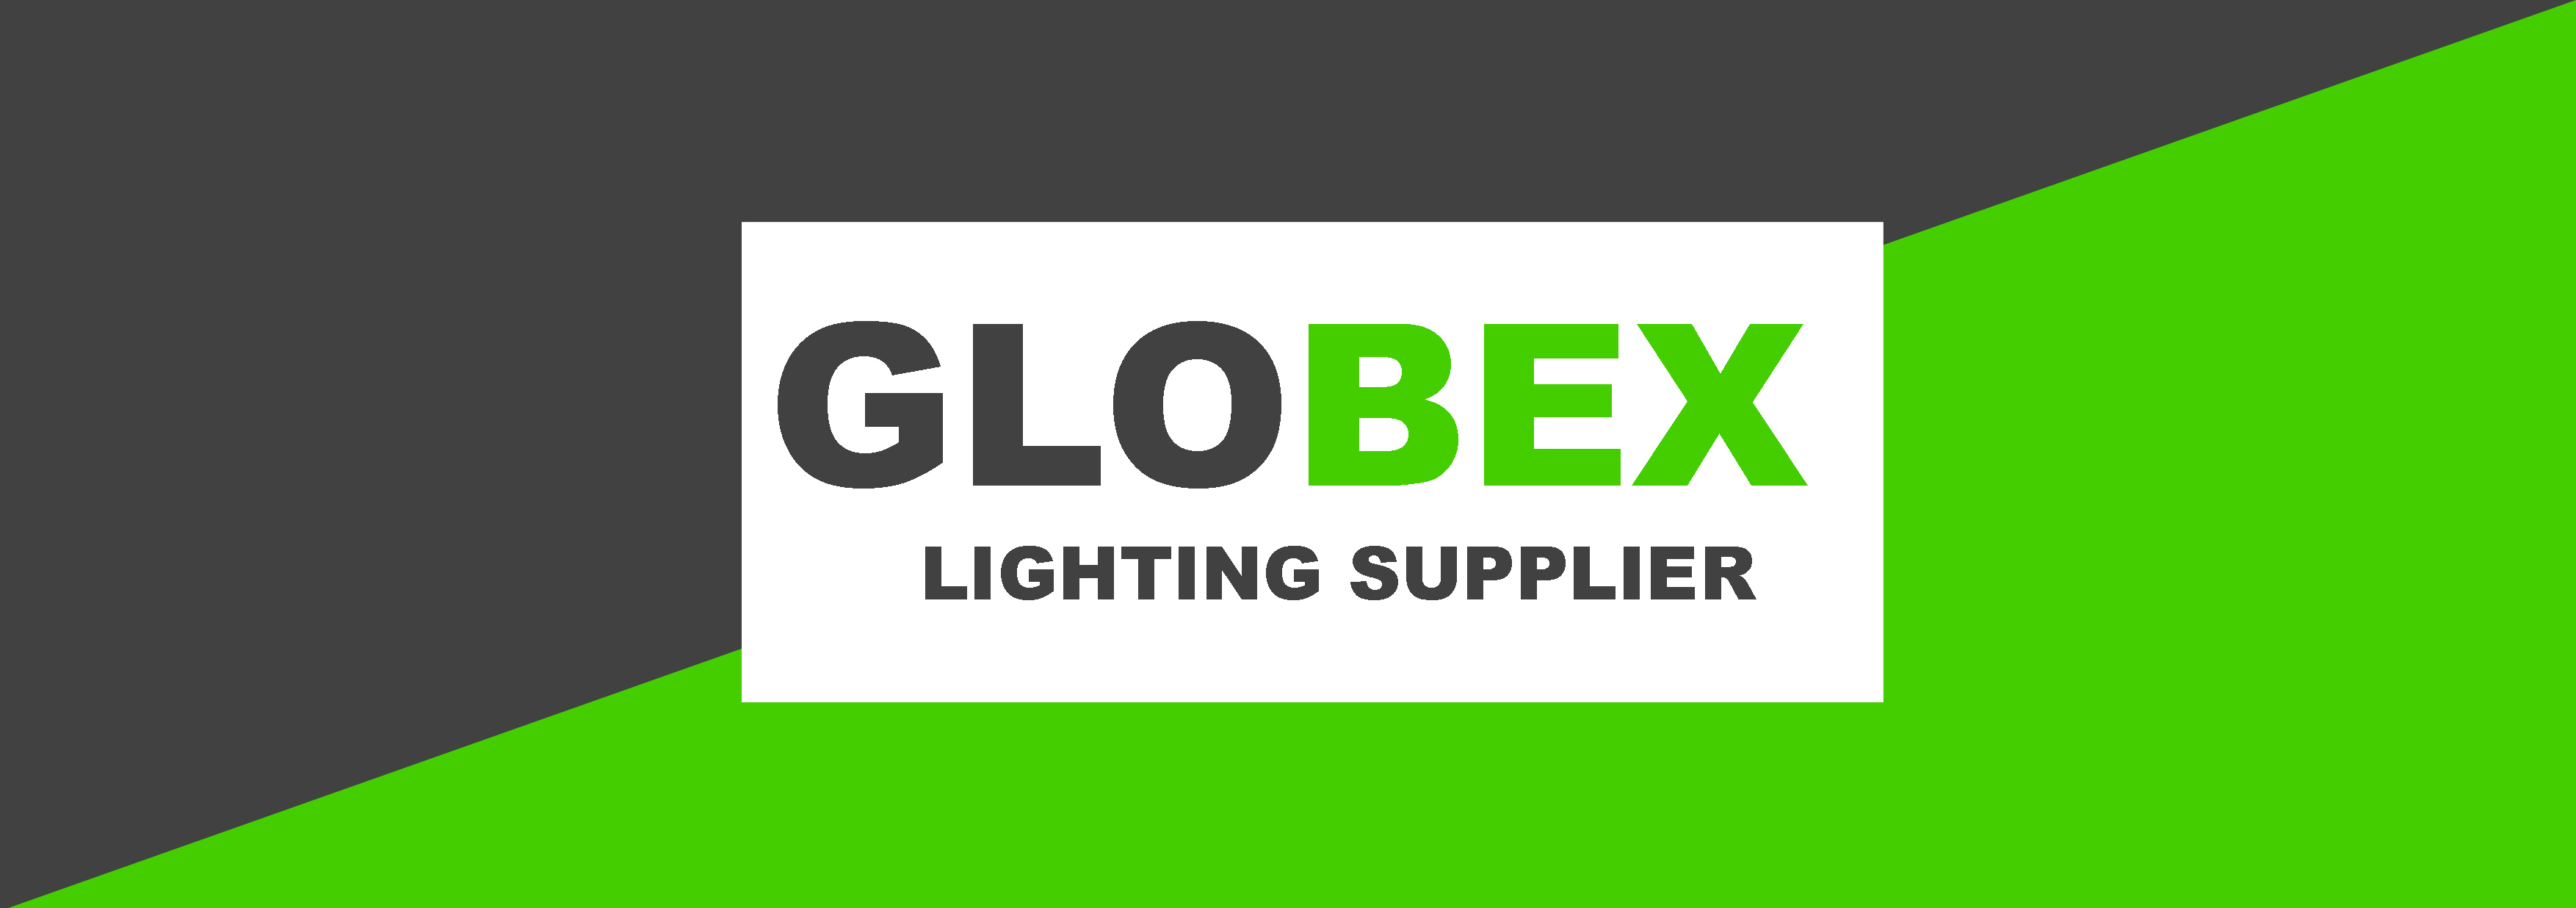 Globex Lighting